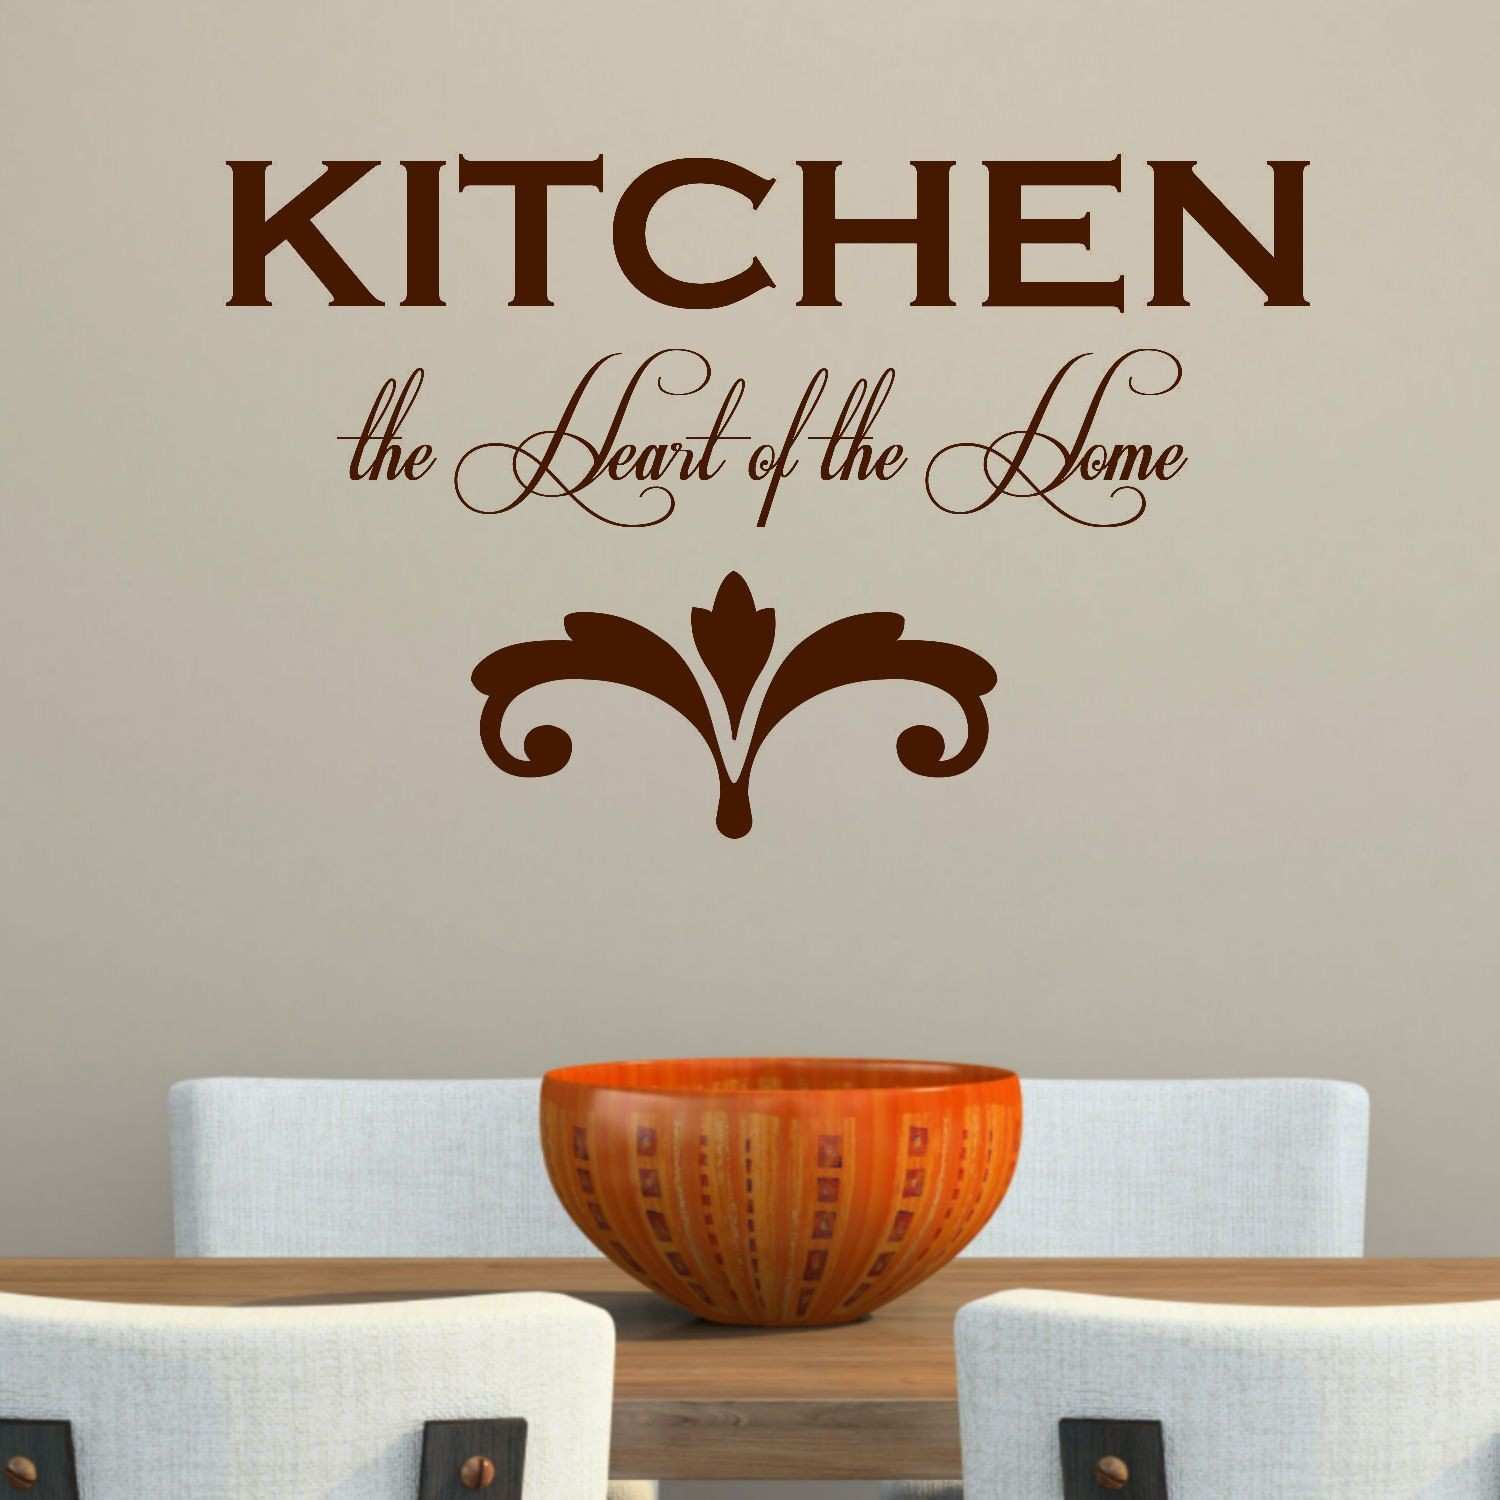 Kitchen the Heart of the Home Wall Decal